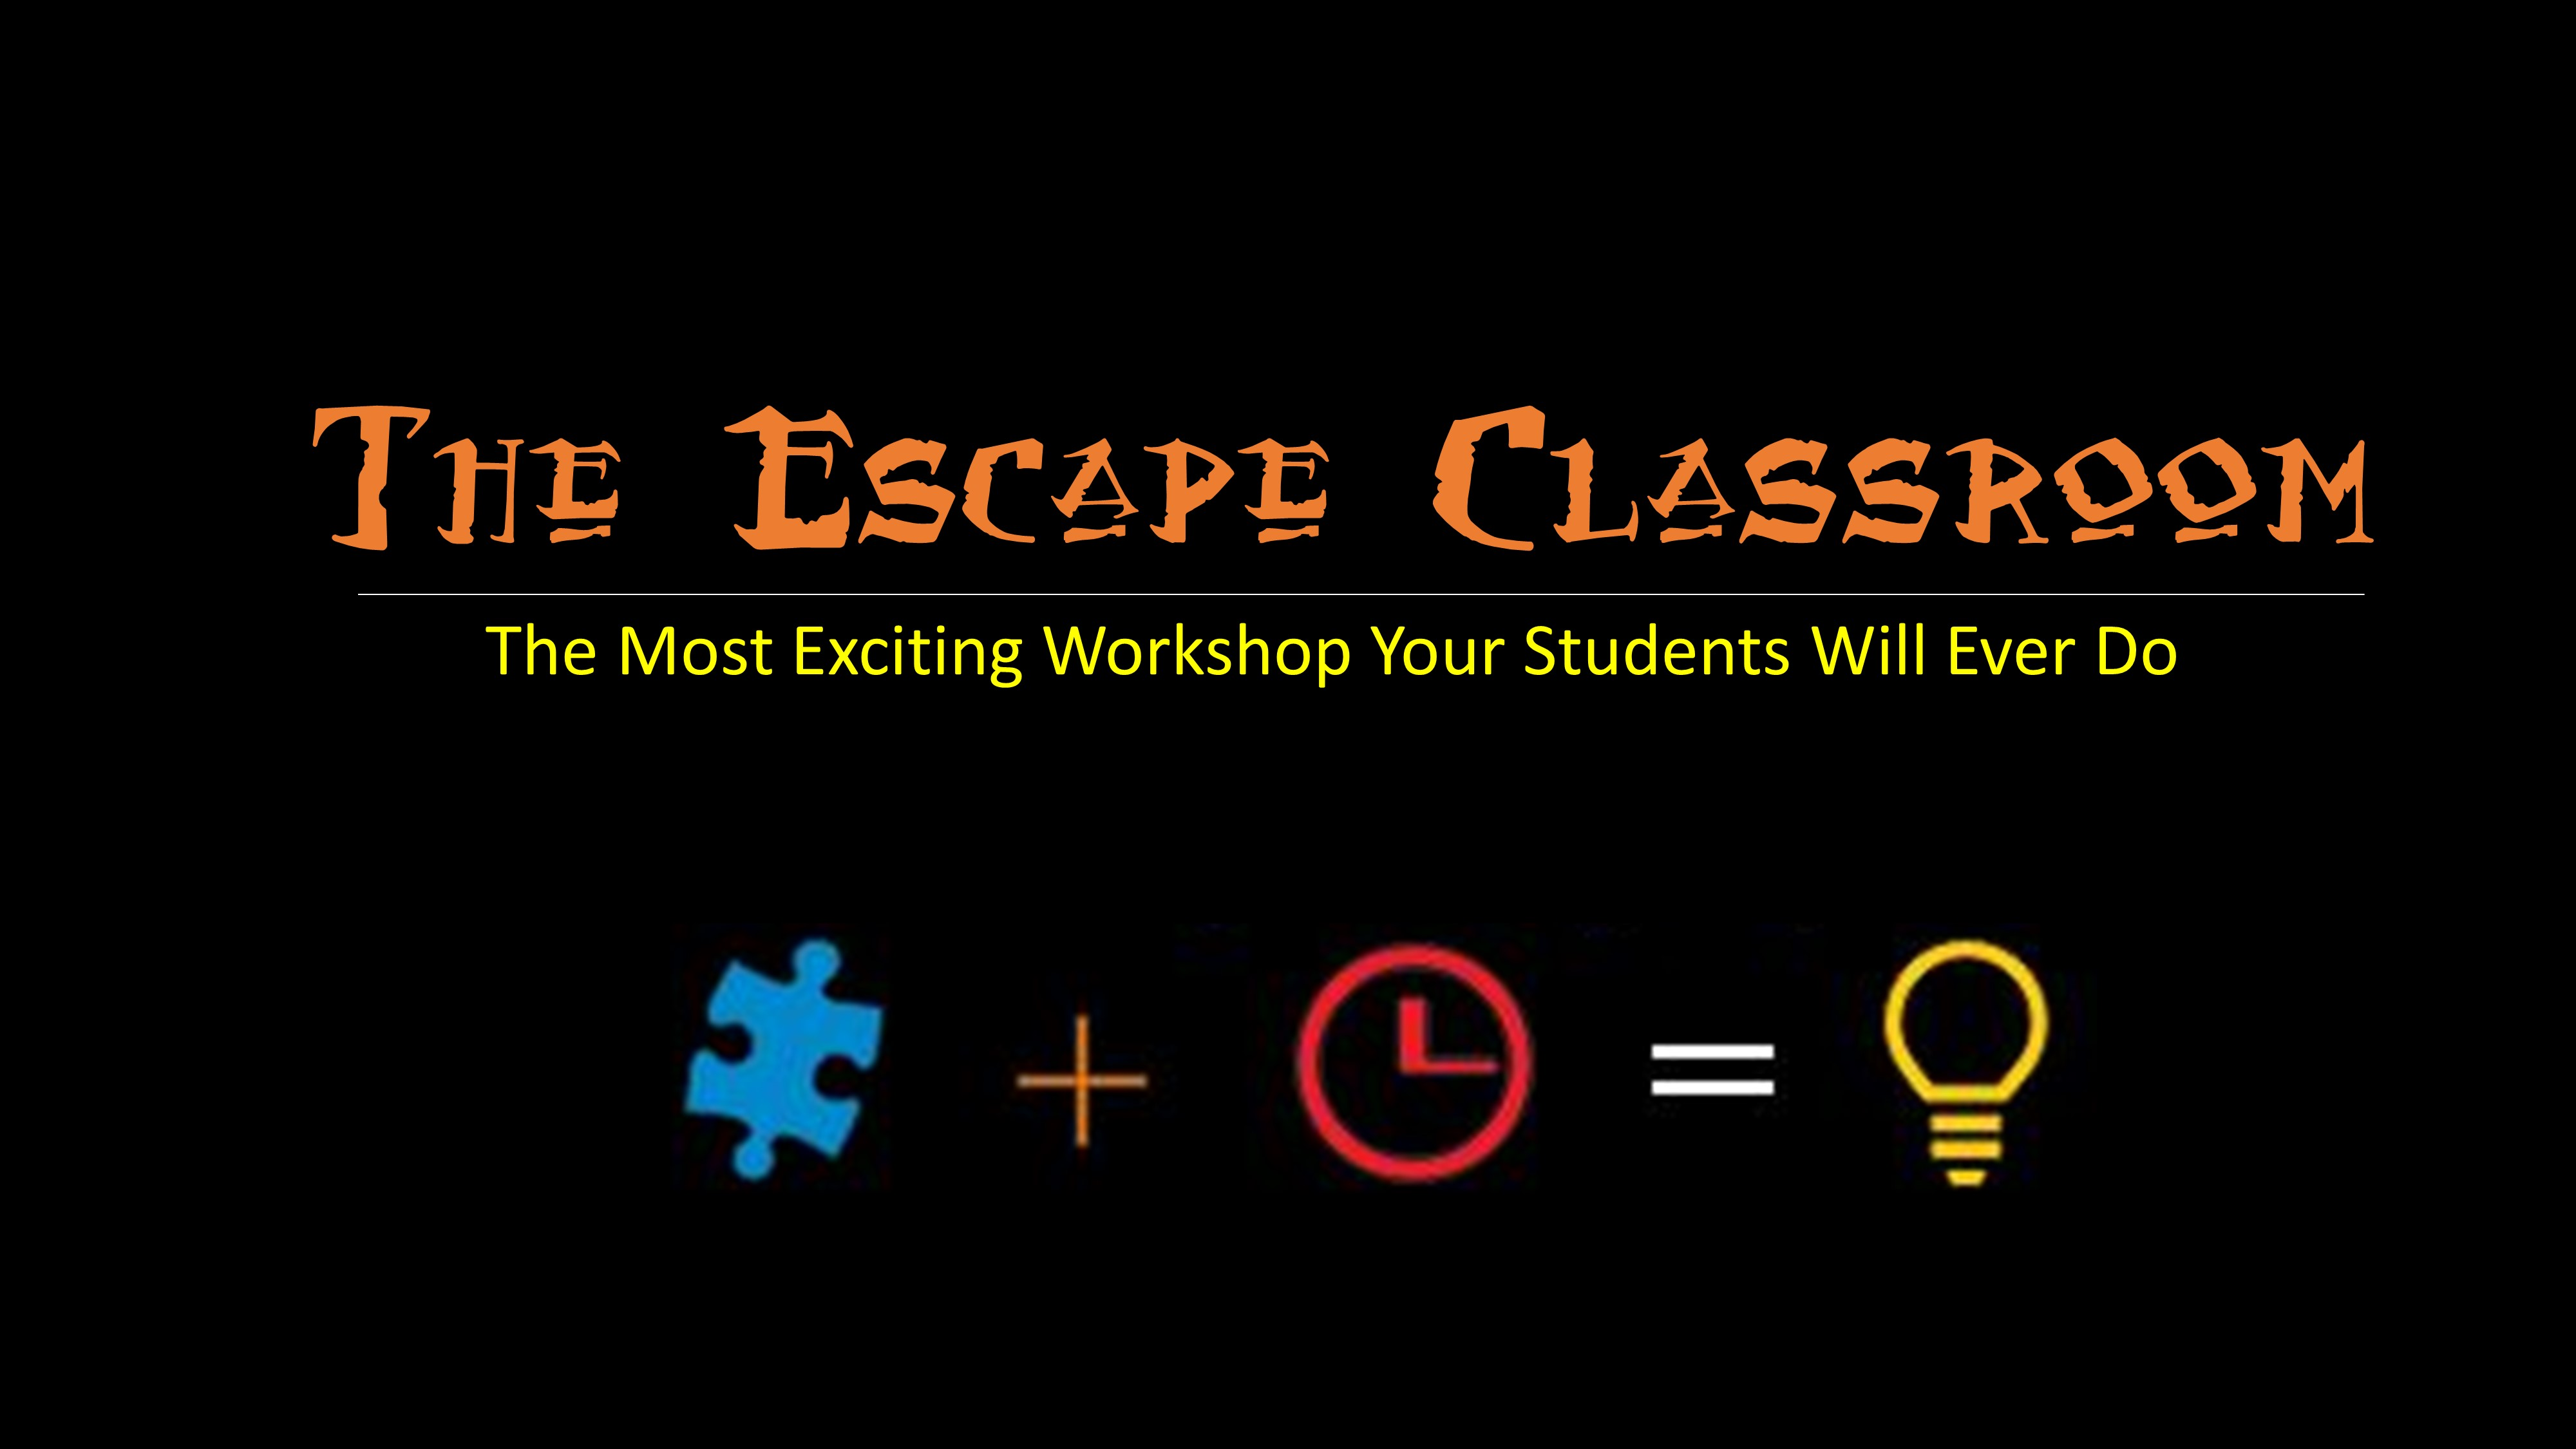 The Escape Classroom